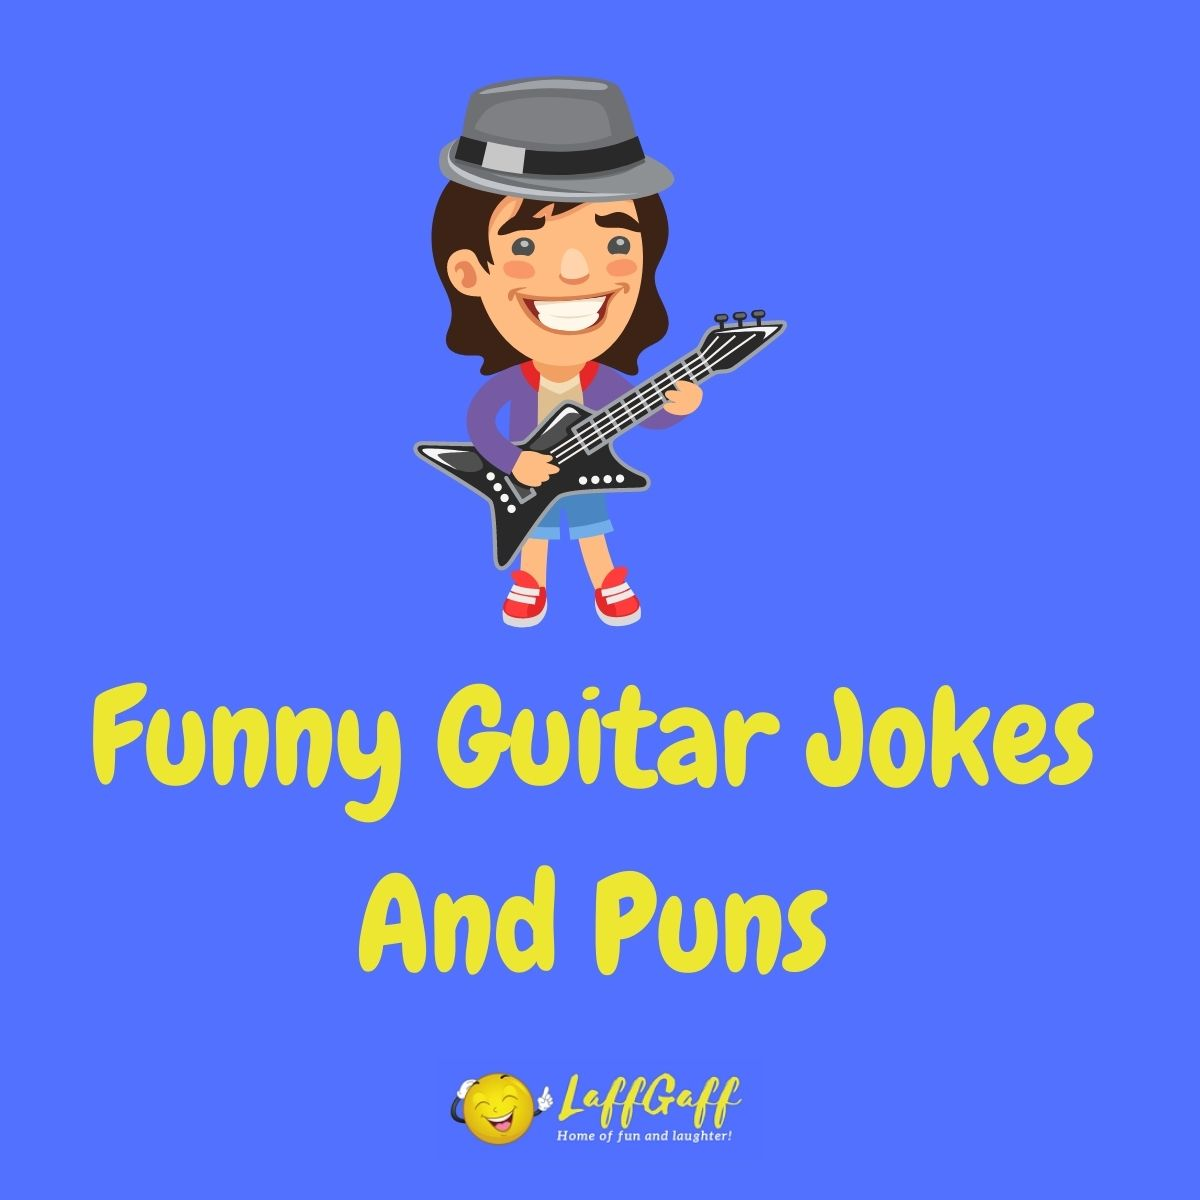 Featured image for a page of funny guitar jokes and puns.